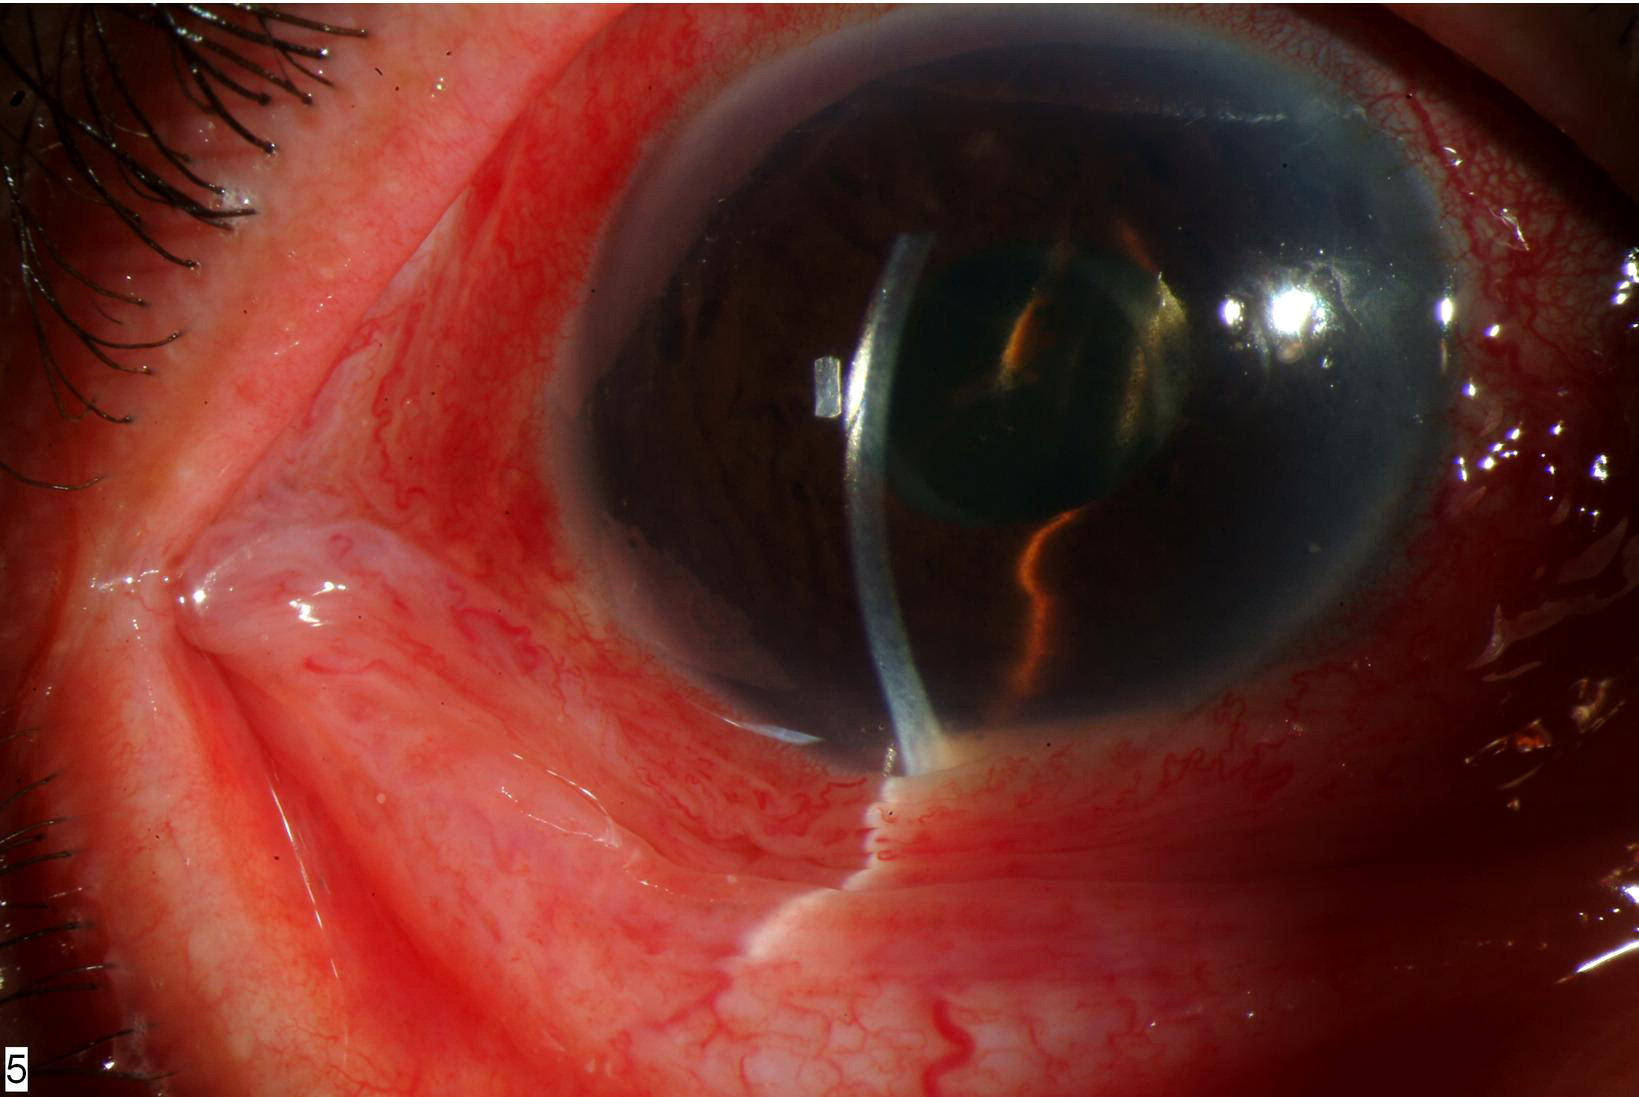 Endophthalmitis After Intravitreal Triamcinolone InjectionIntravitreal Injection Endophthalmitis